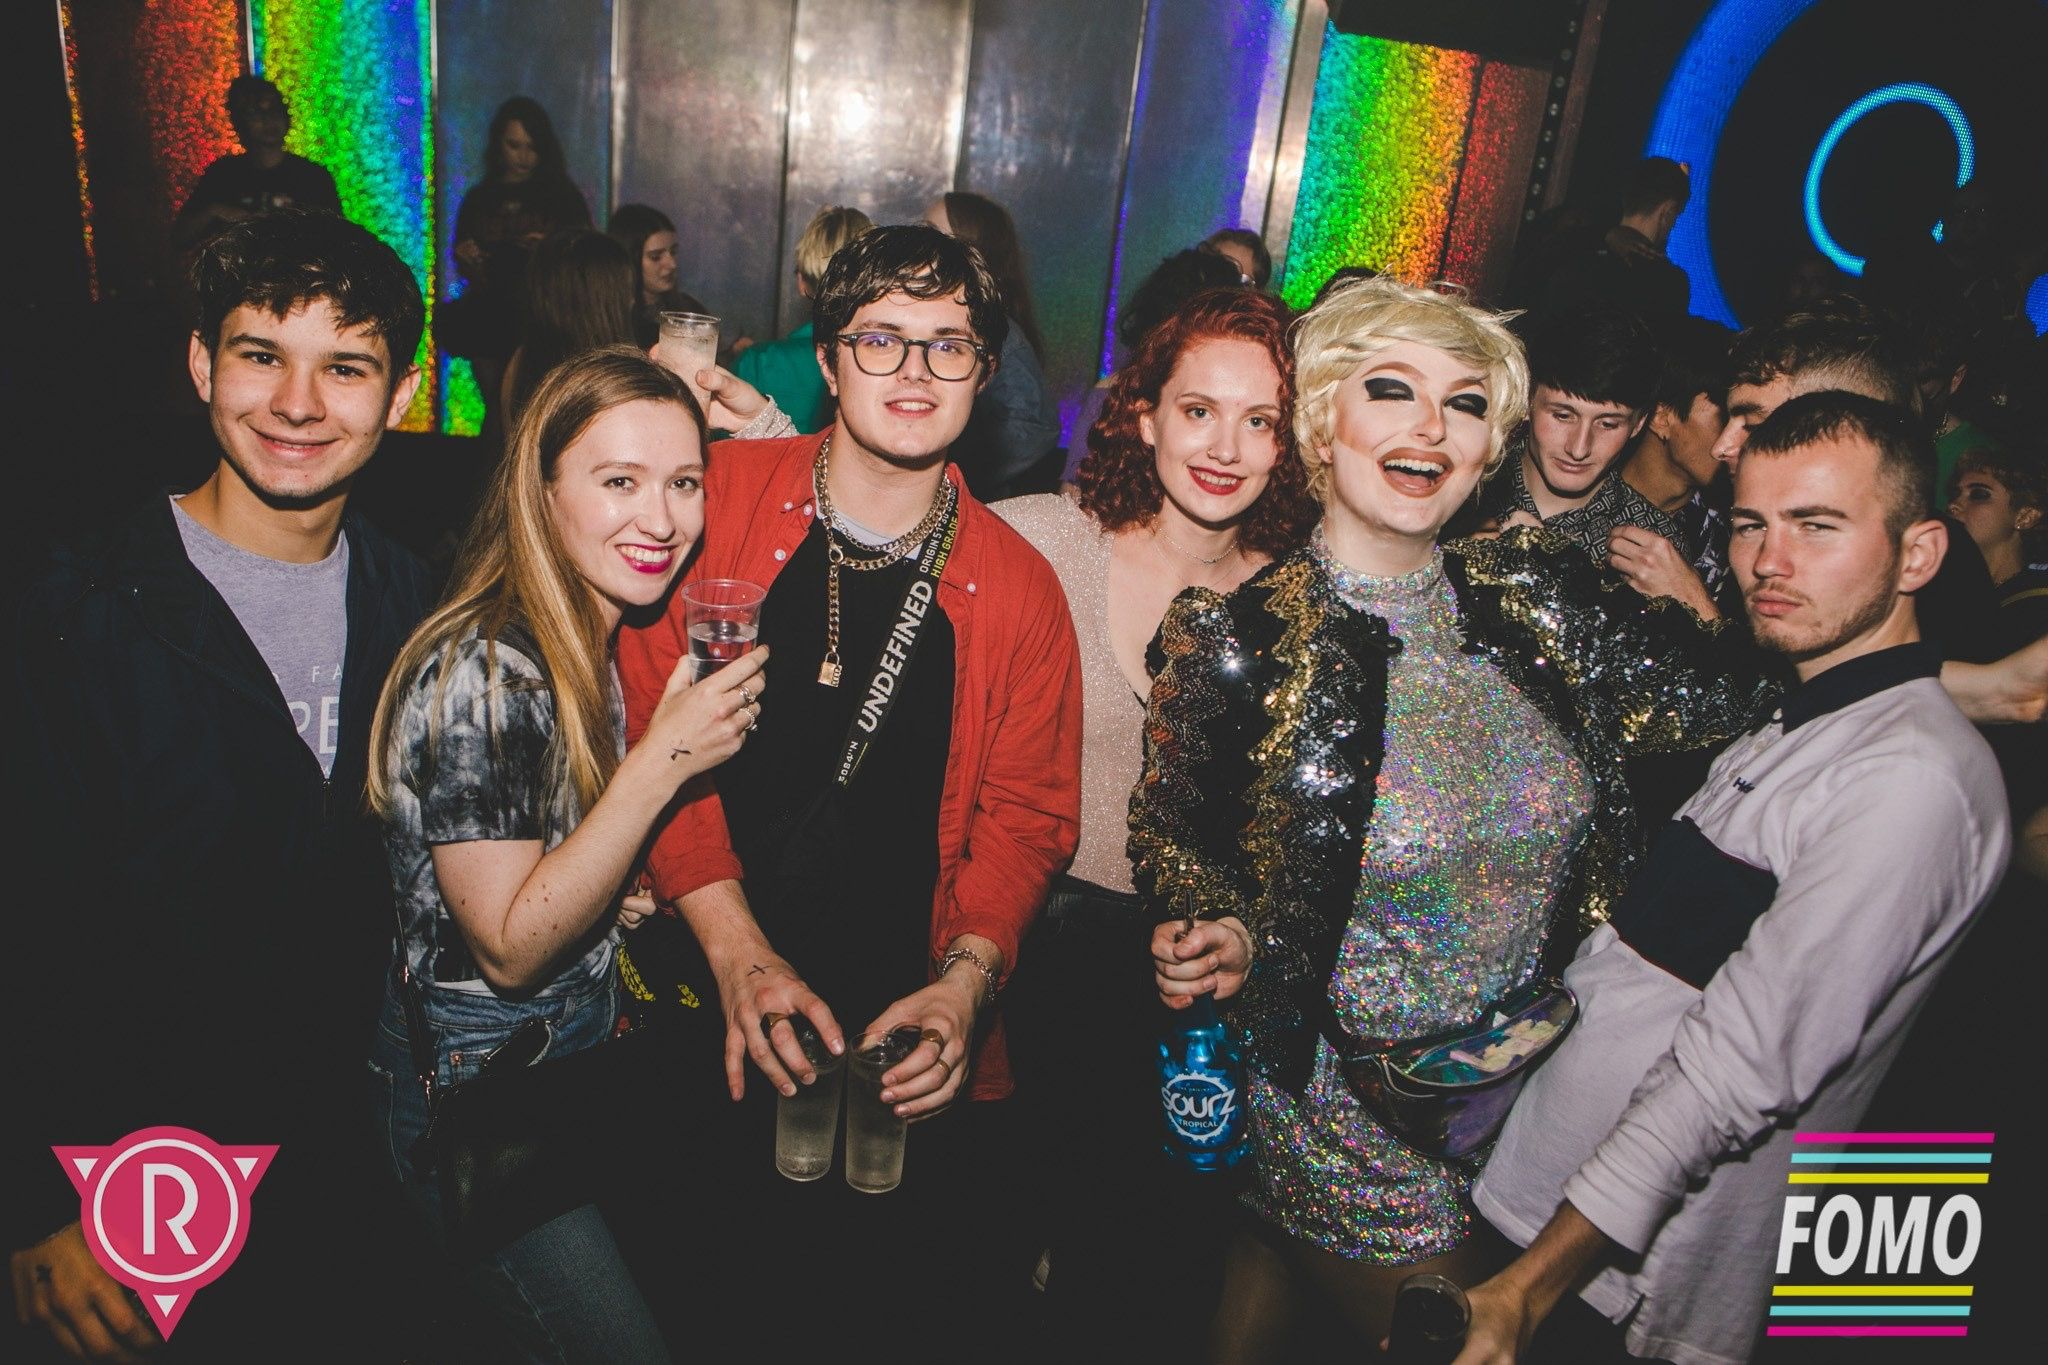 Image may contain: Disco, Night Life, Party, Accessory, Glasses, Accessories, Night Club, Club, Person, Human